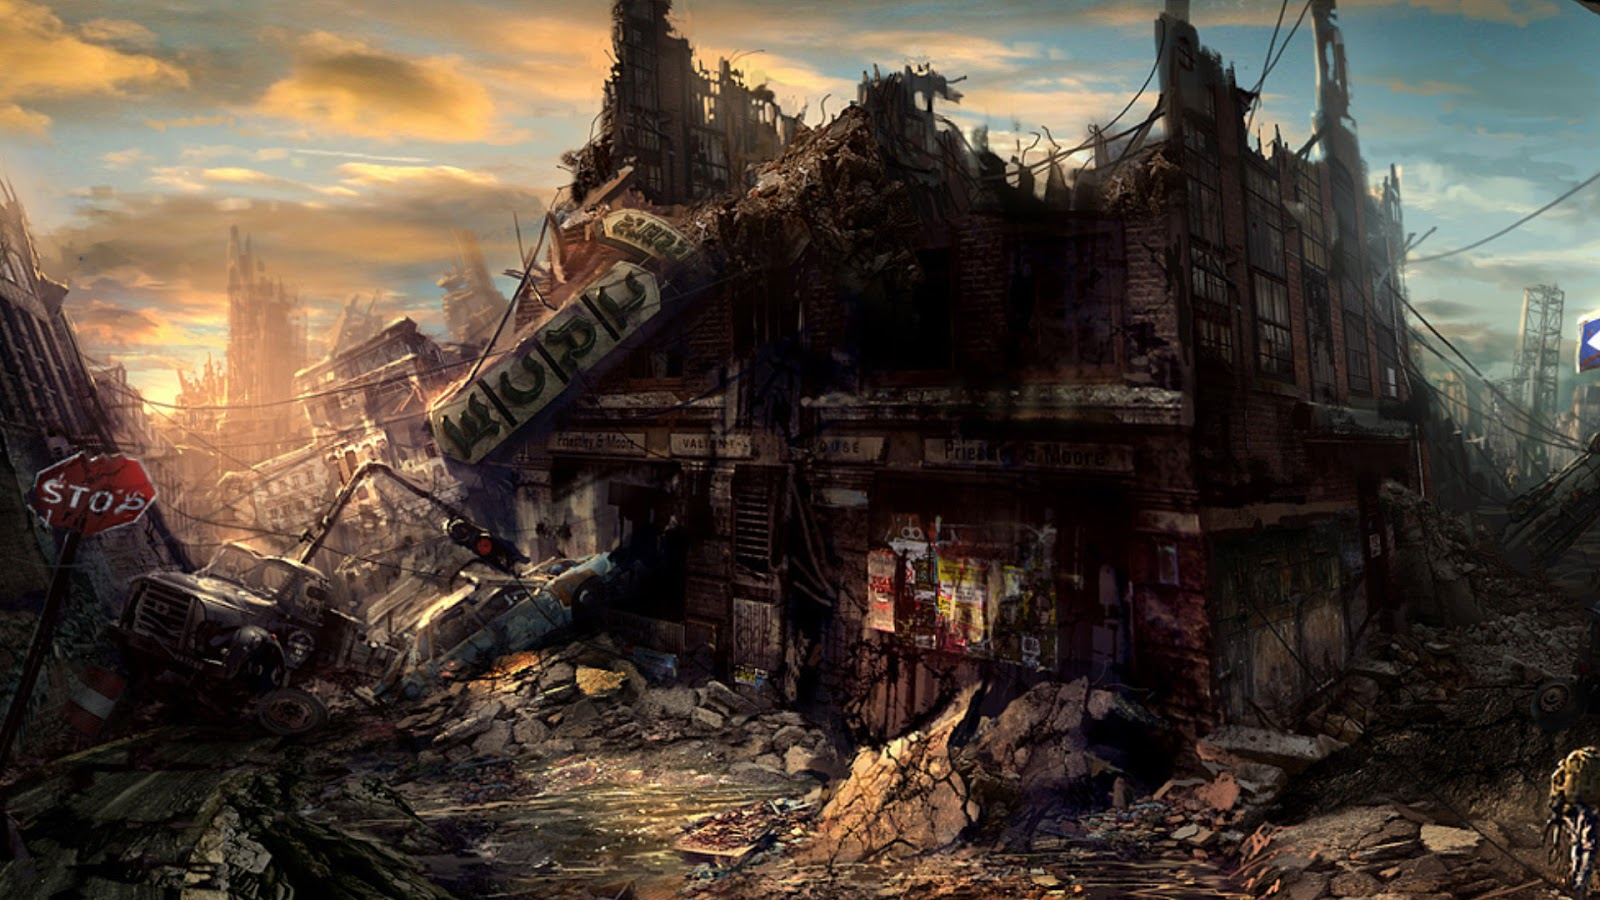 World Wildness Web: Post Apocalyptic Wallpapers